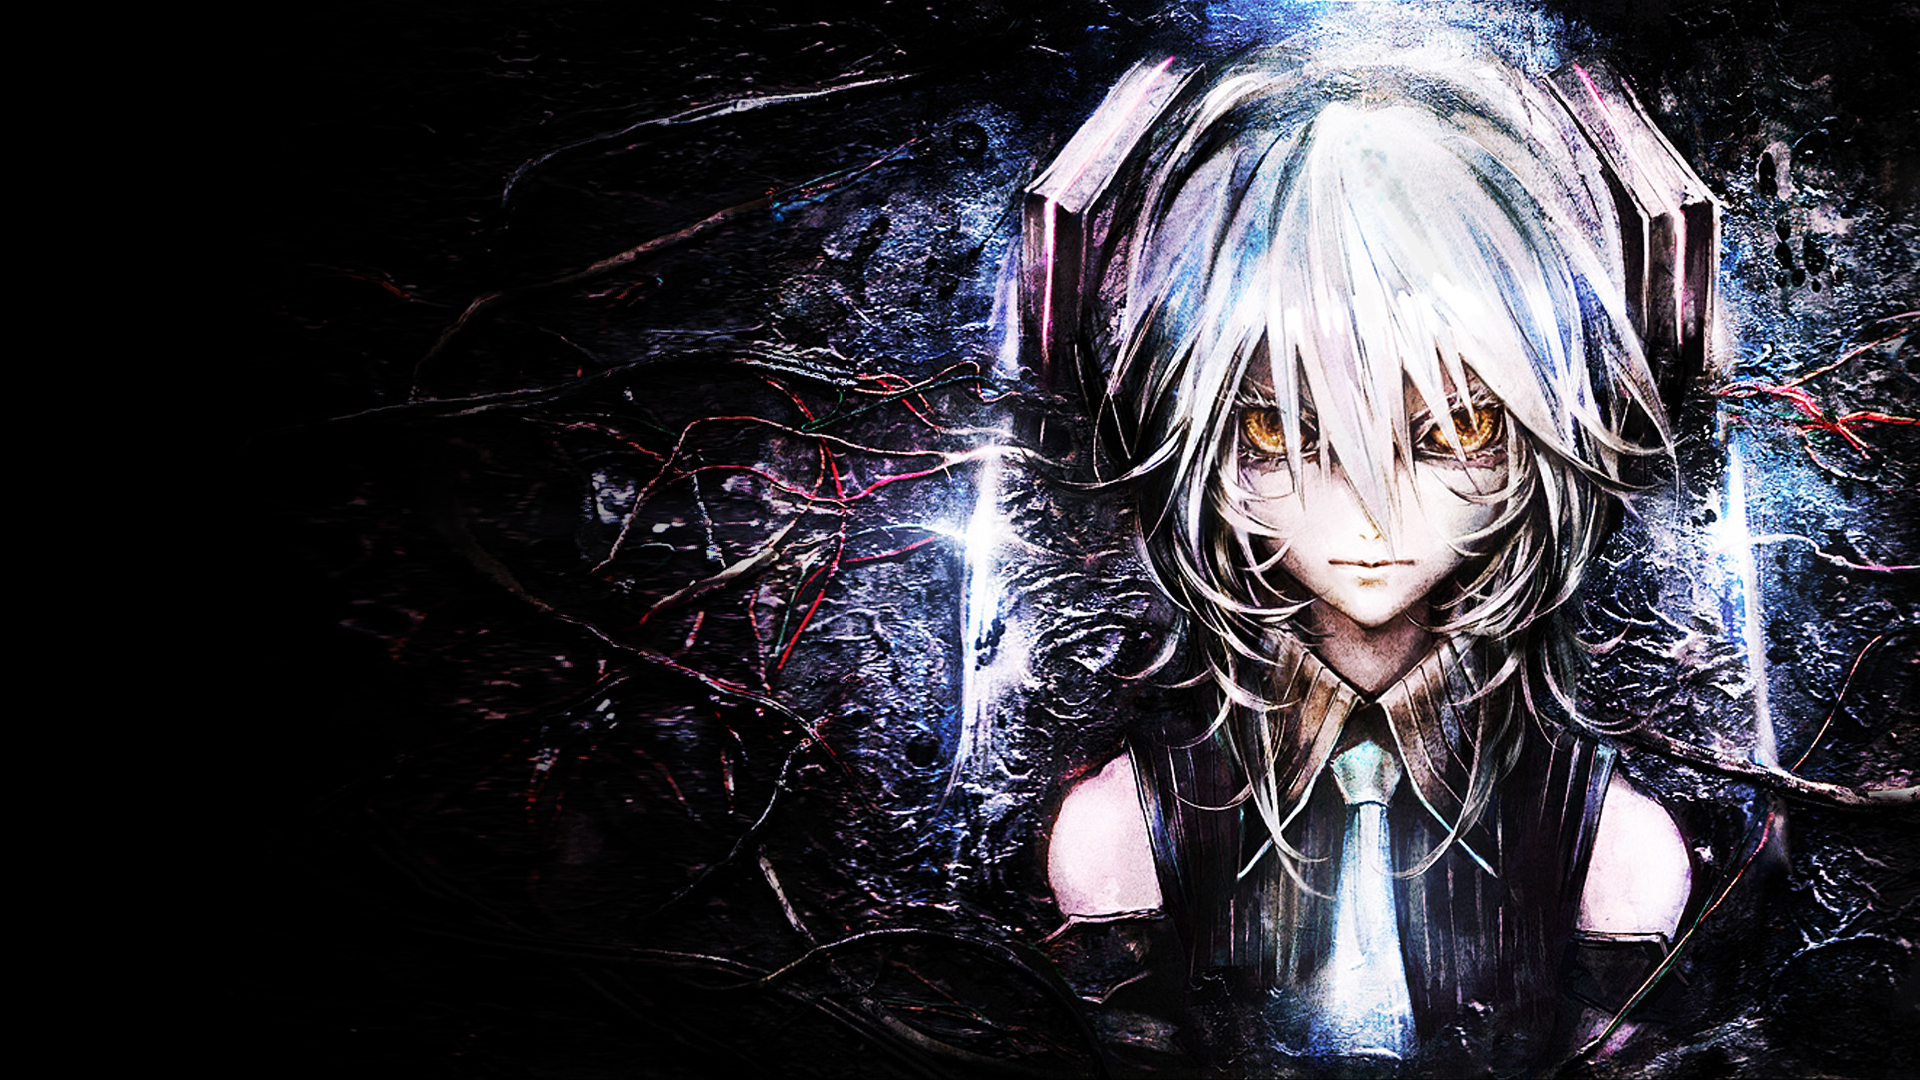 Download 'cool anime hd desktop image' HD wallpaper